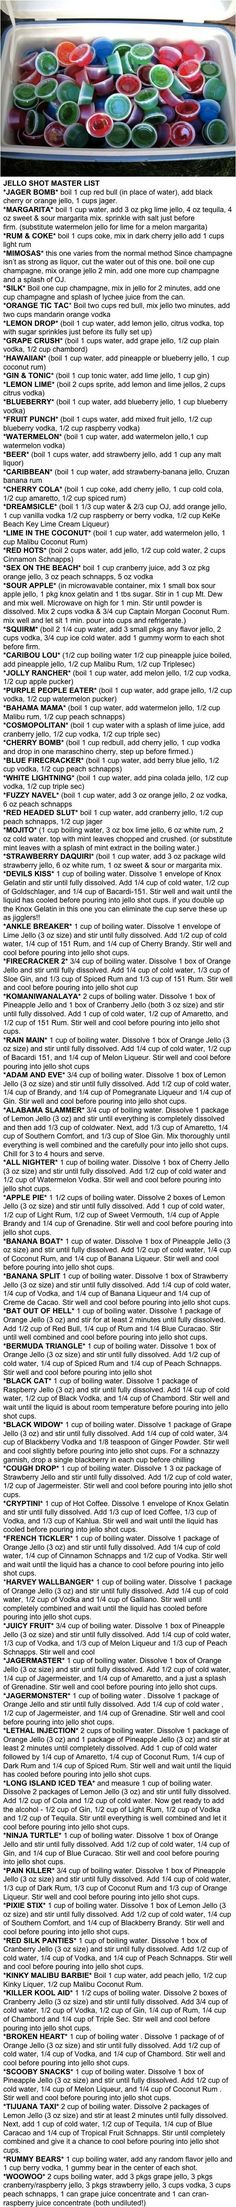 Jello Shot Master List...this would be great for camping!!